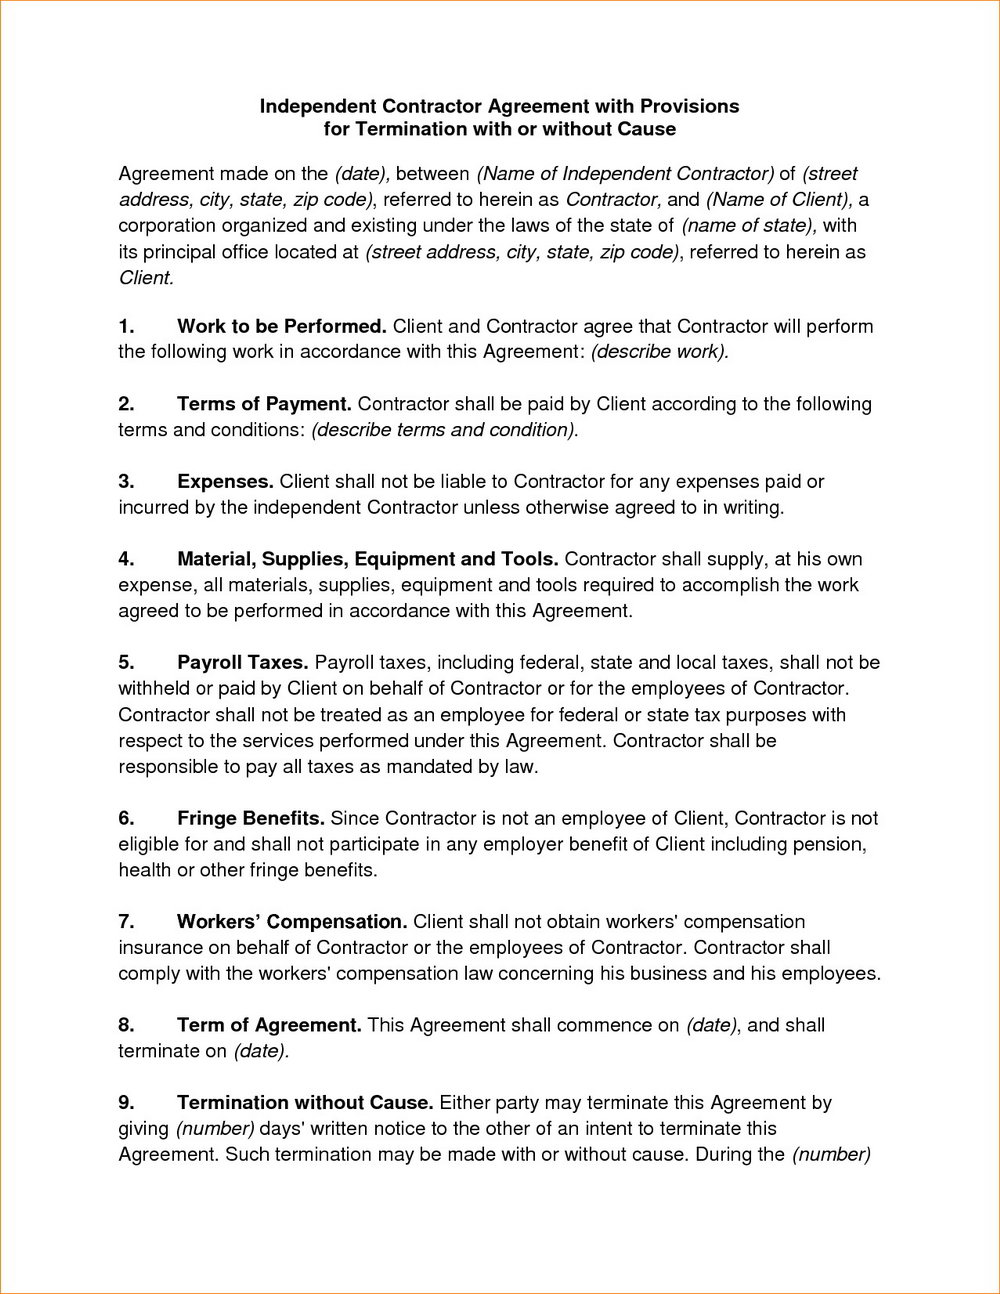 Independent Contractor Contract Template Australia